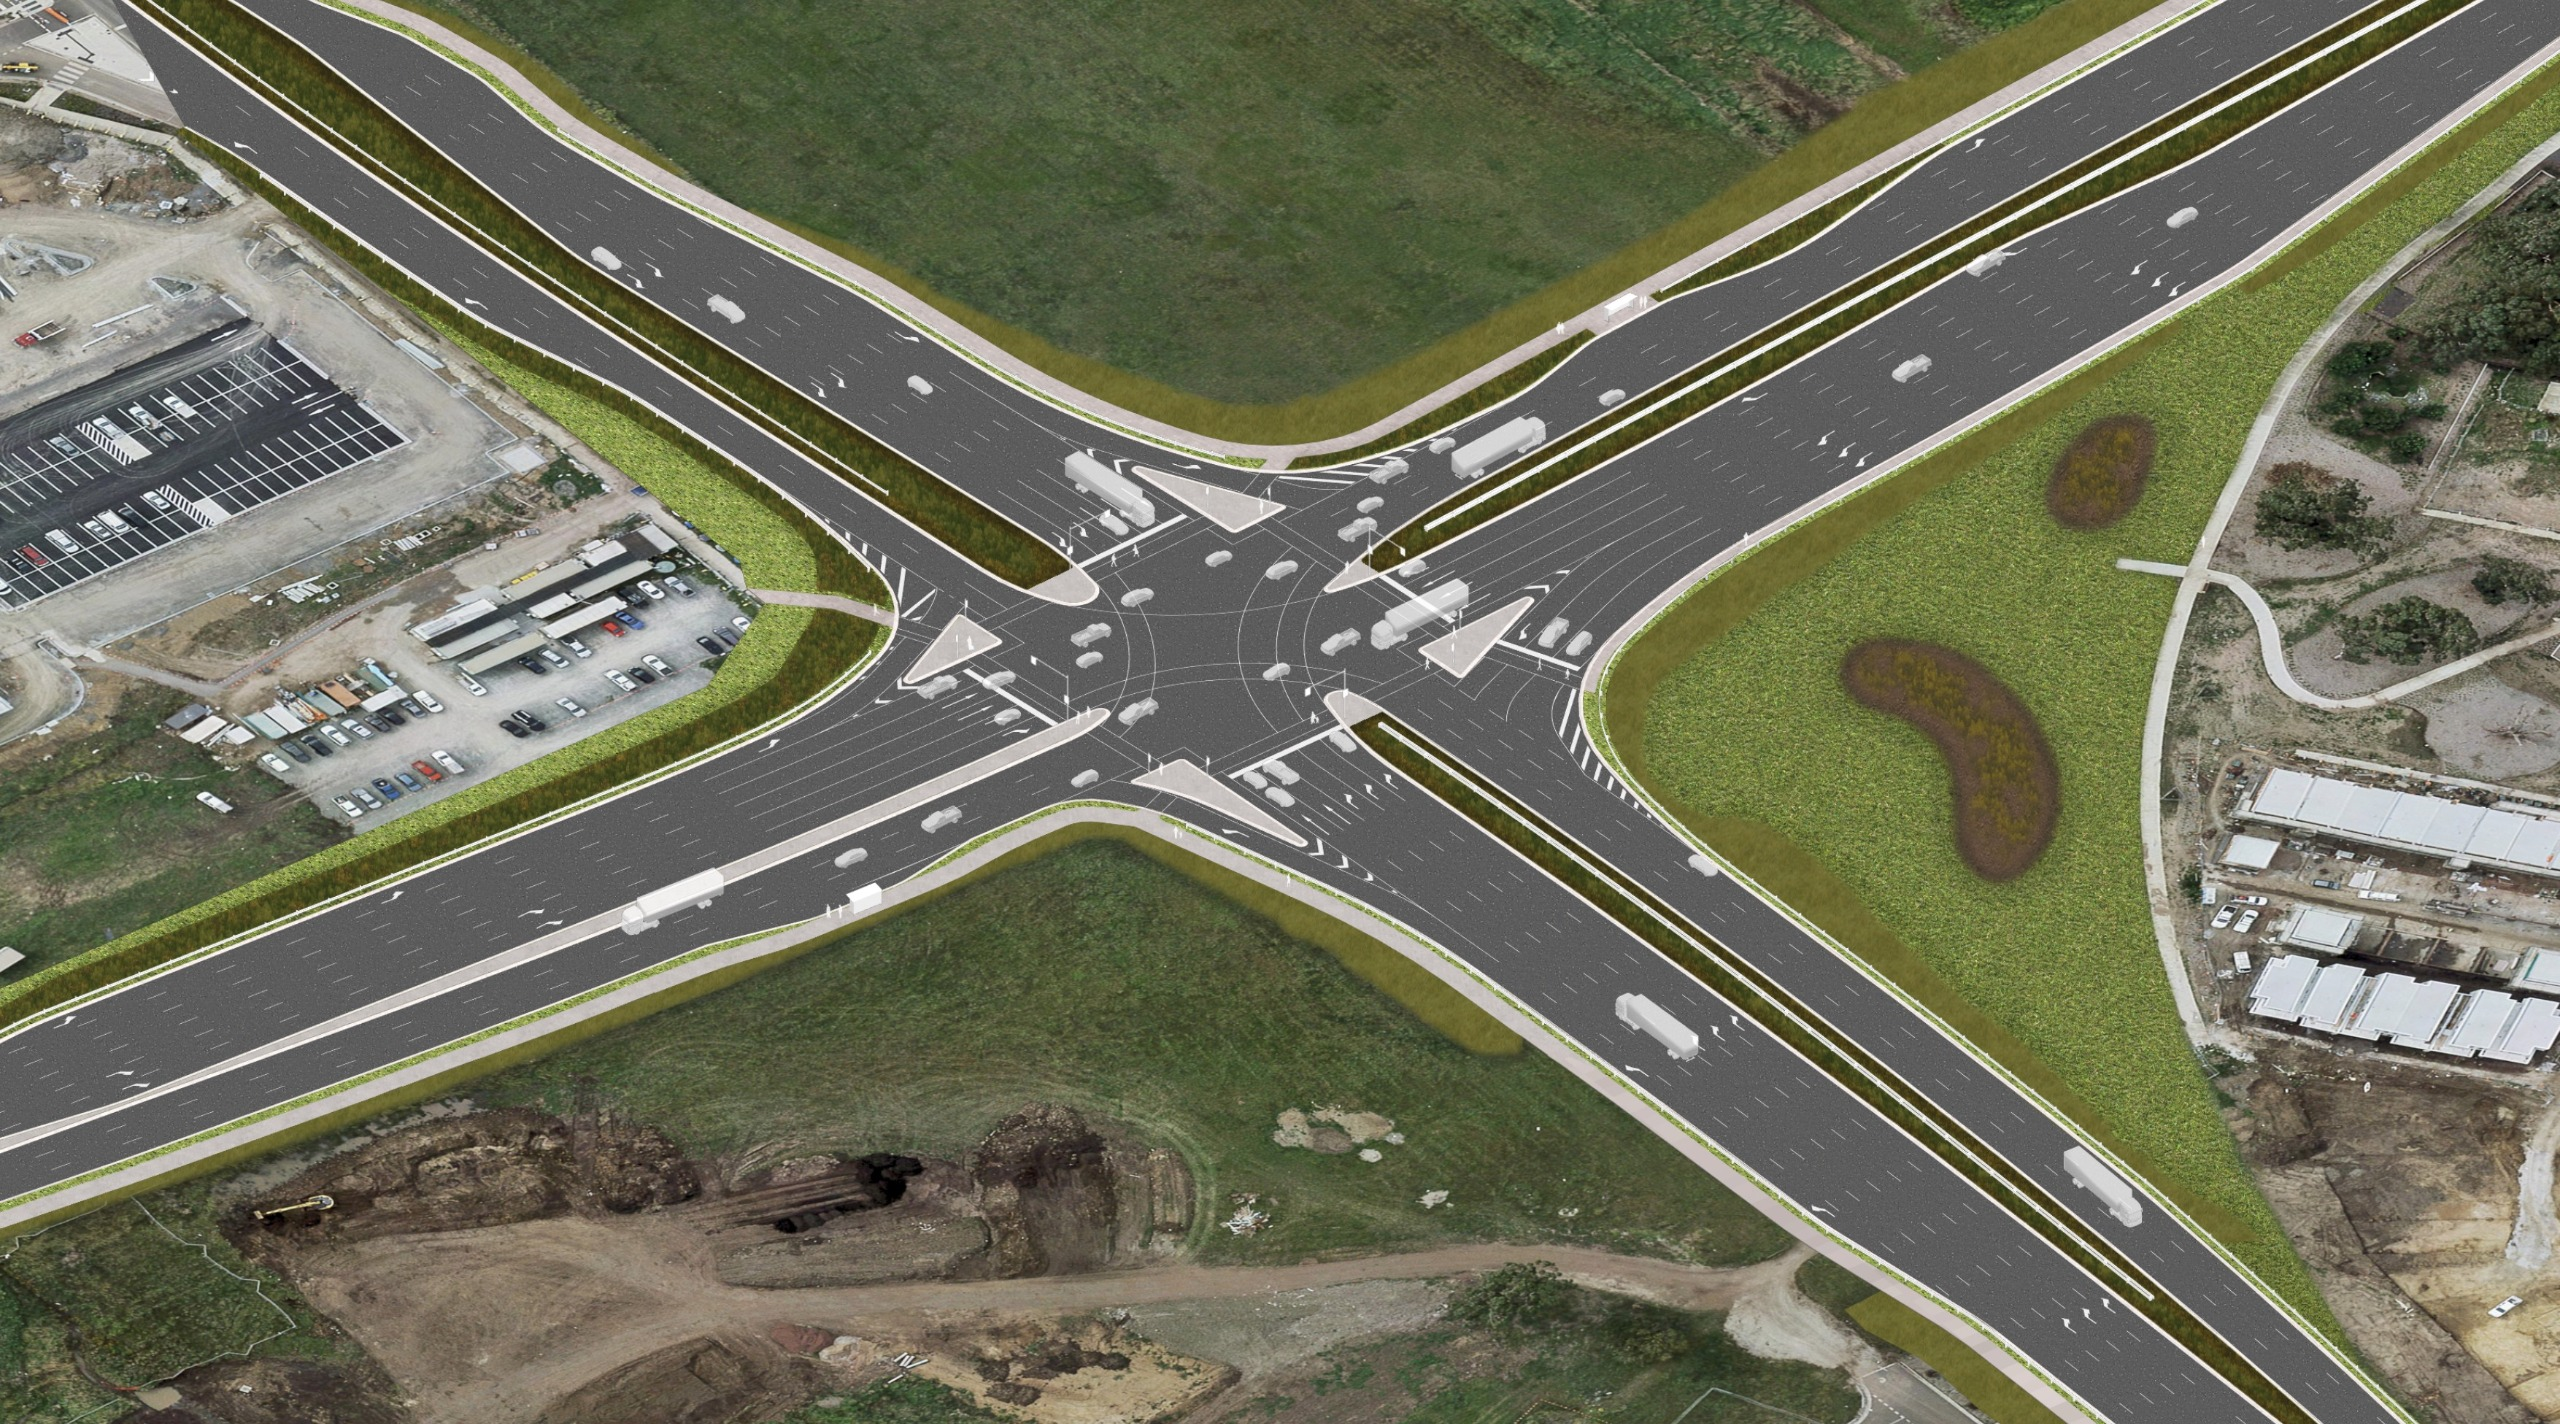 Aerial view artist's impression of Evans Road 15 years after project completion